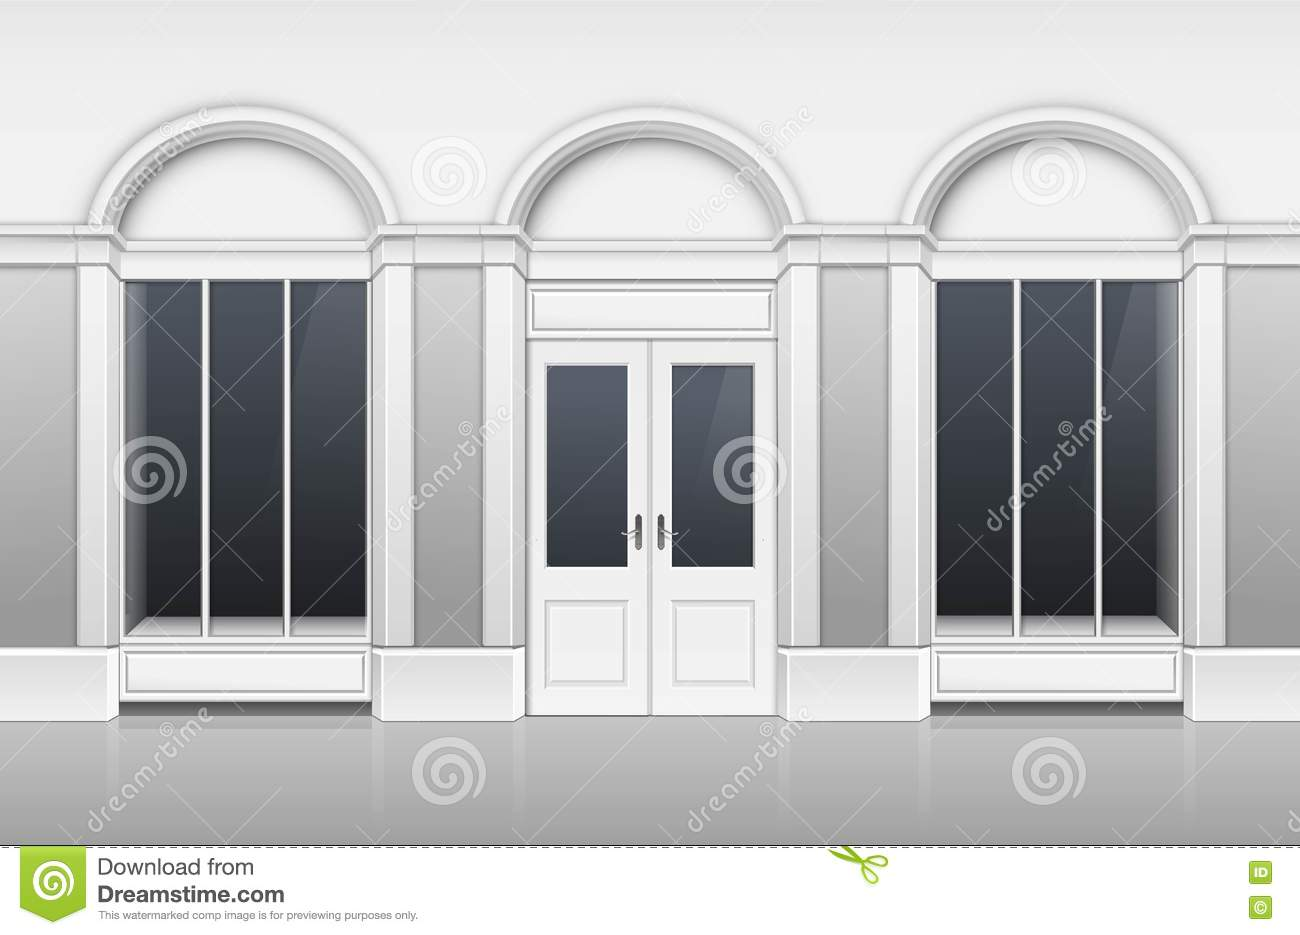 Shop Building With Glass Showcase Closed Door Stock Vector